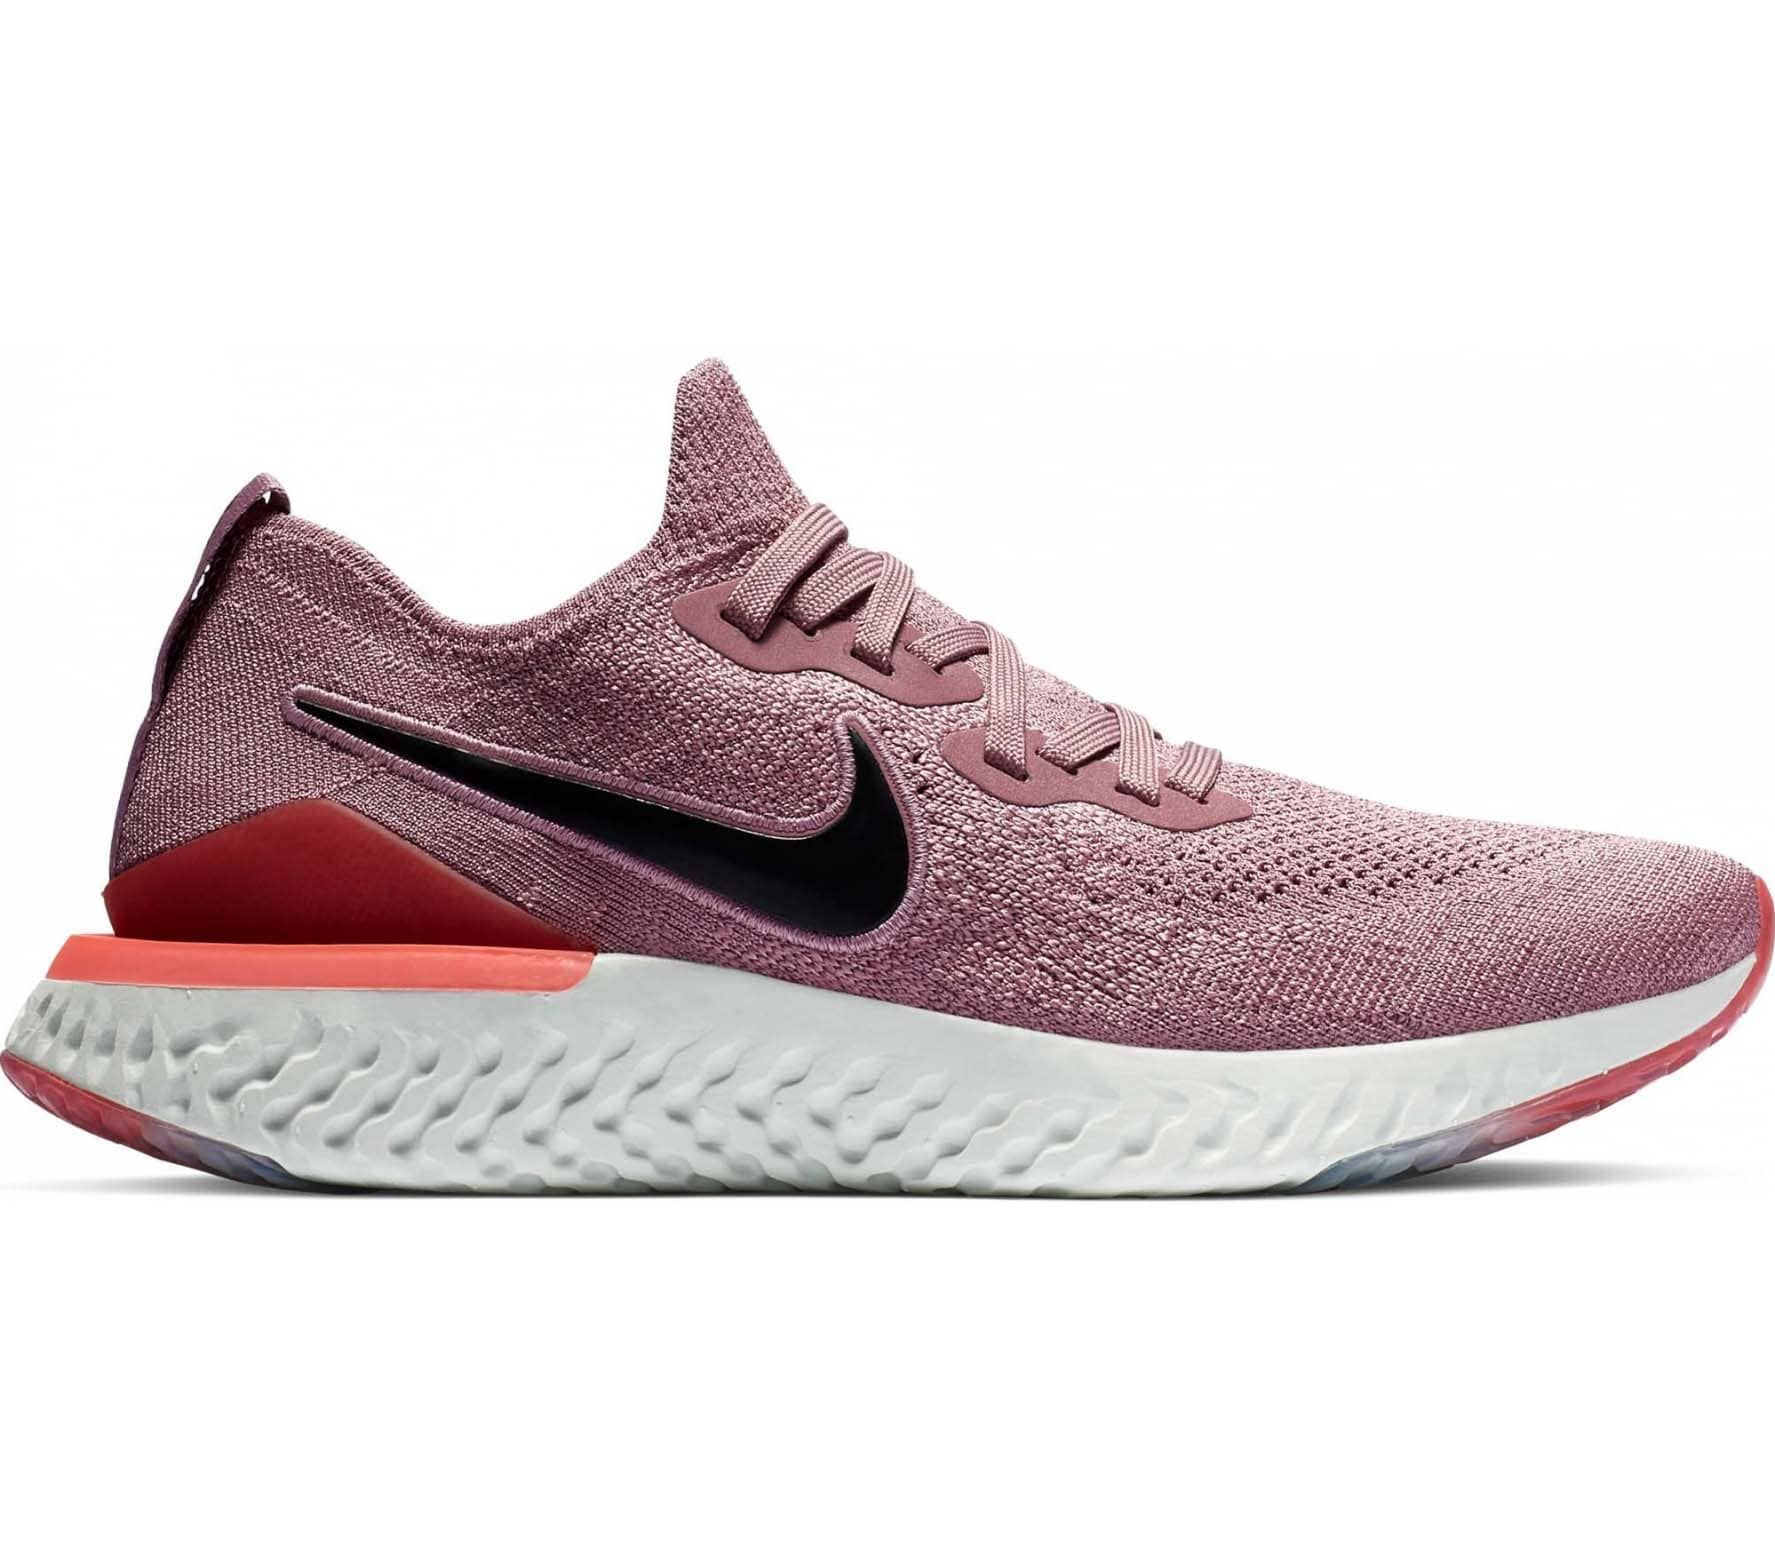 THE NEW NIKE EPIC REACT FLYKNIT 2 PUT TO THE TEST Keller